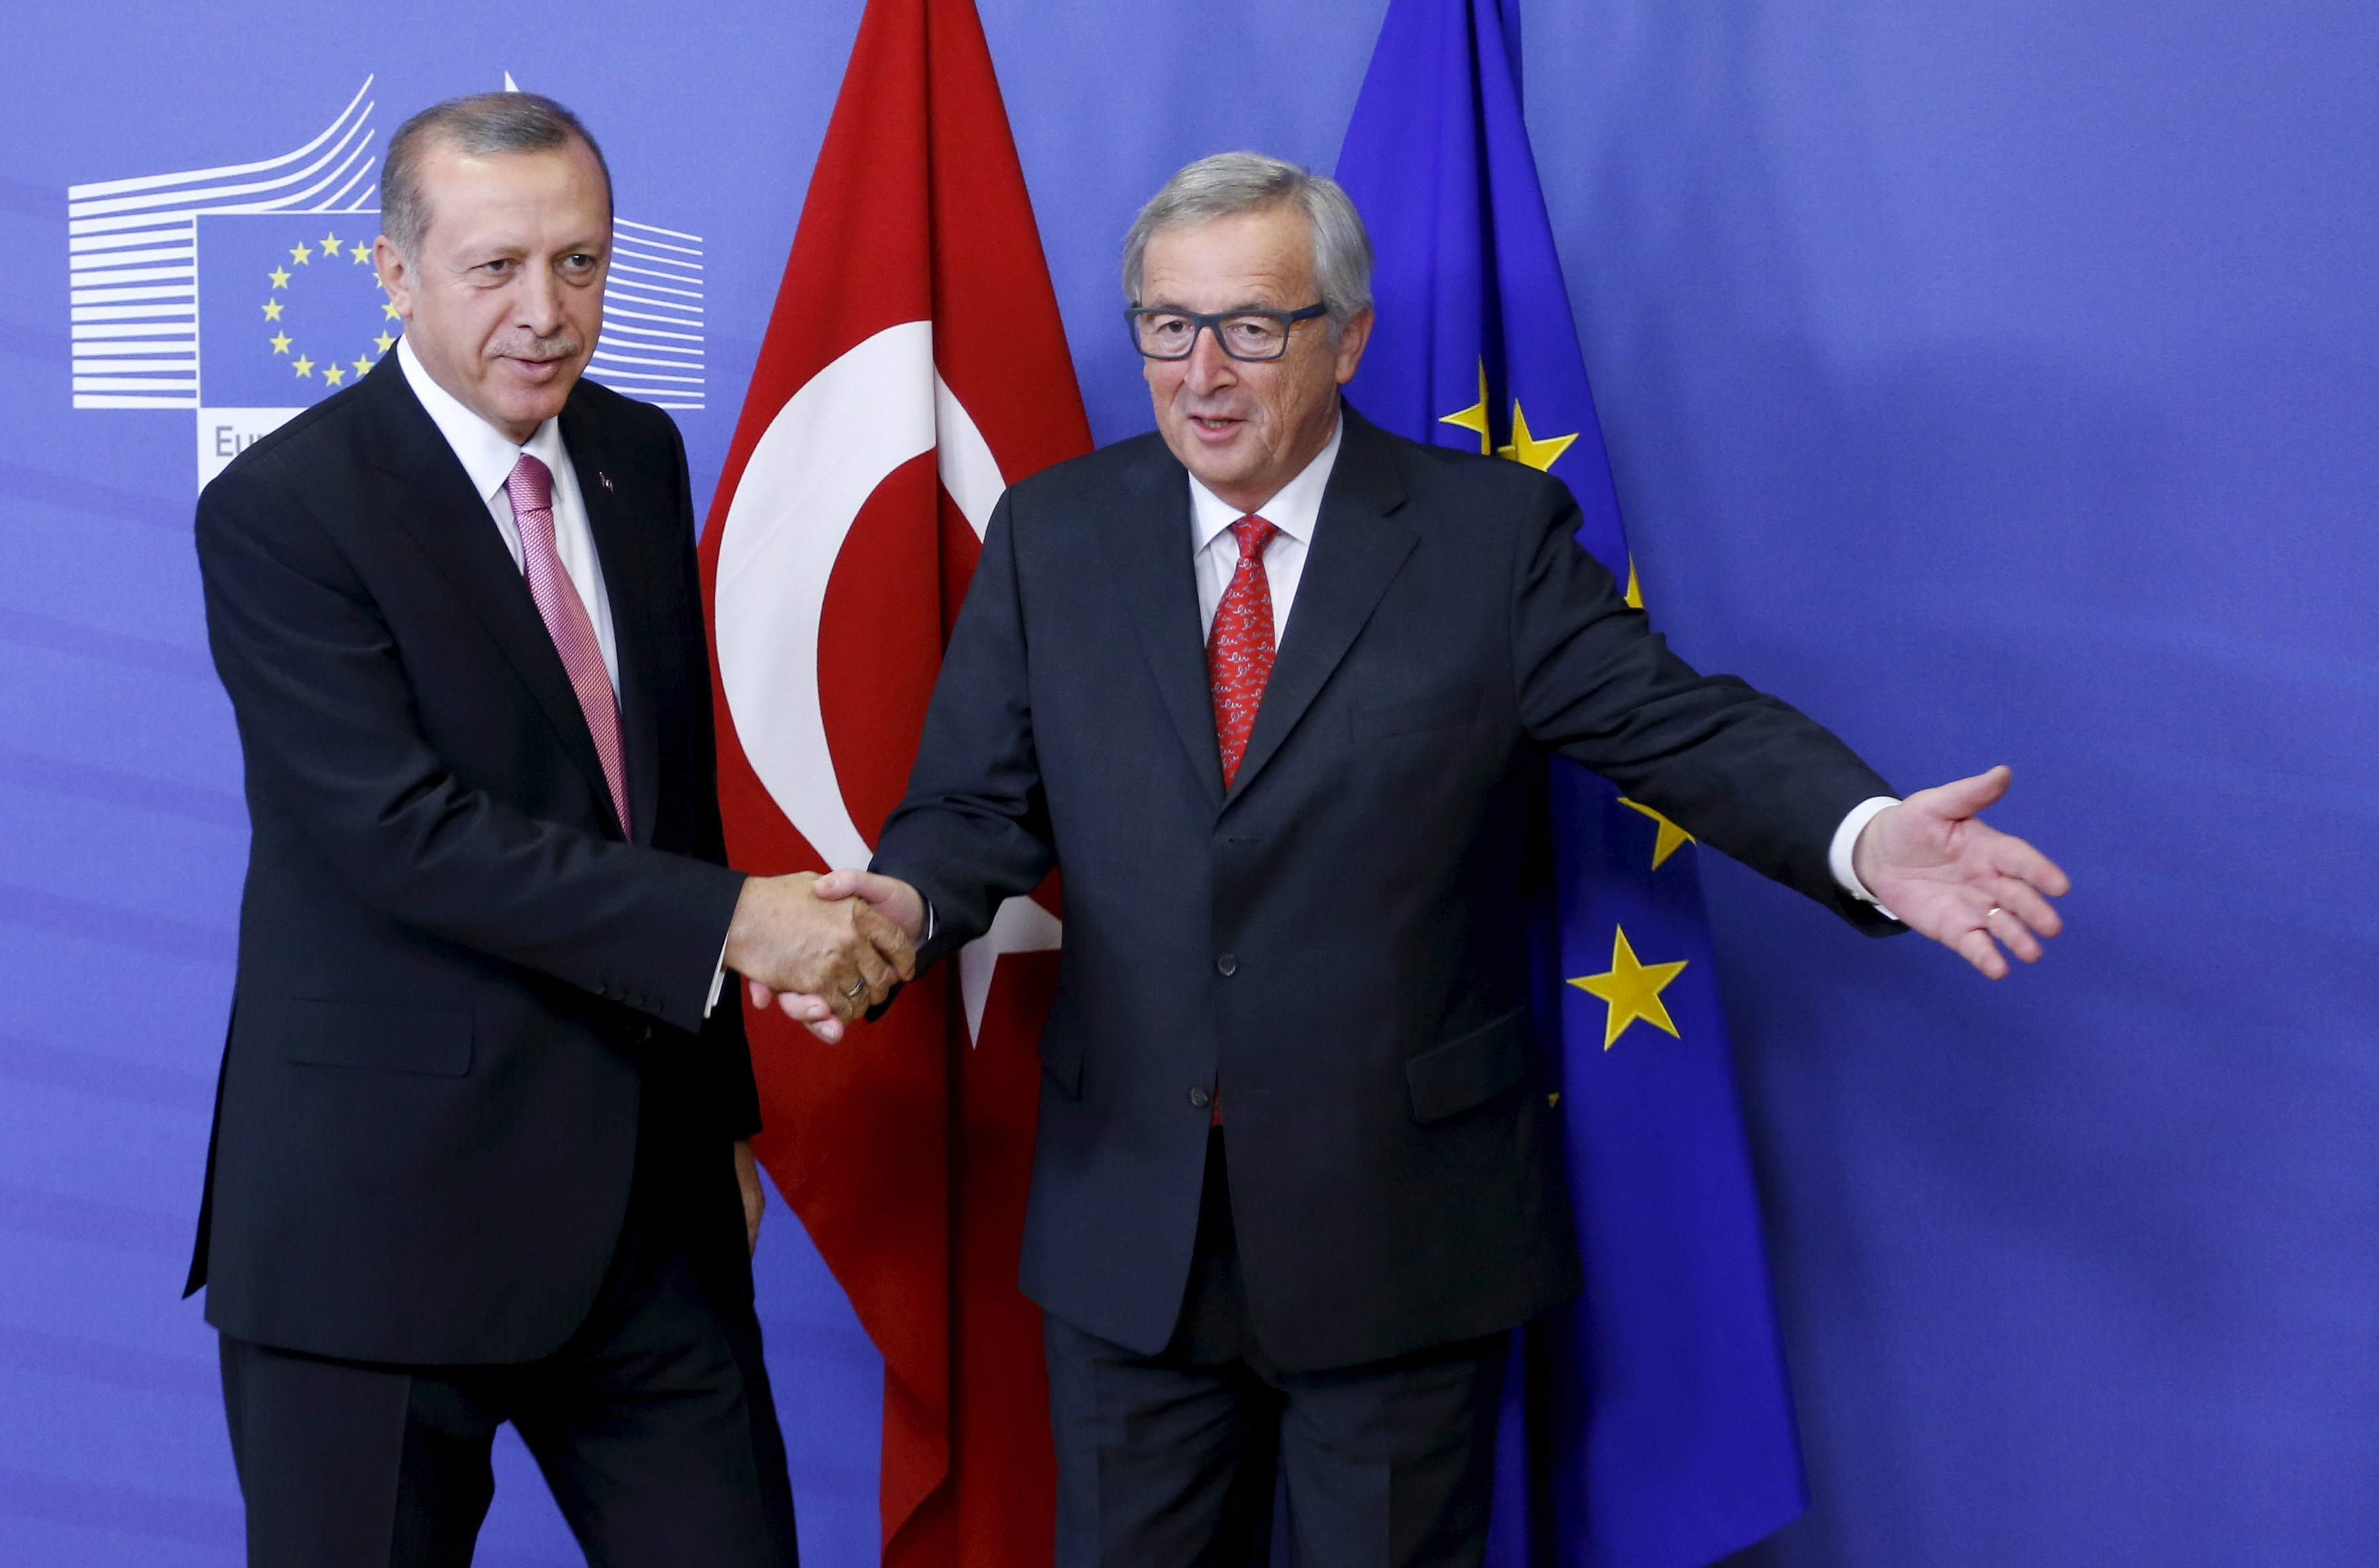 European Commission President Jean-Claude Juncker welcomes Turkey's President Tayyip Erdogan (L) at the EU Commission headquarters in Brussels, Belgium October 5, 2015. Erdogan mocked European Union overtures for help with its migration crisis during a long-awaited visit to Brussels on Monday that in the end was partly overshadowed by Russia's violation of Turkish airspace near Syria. REUTERS/Francois Lenoir